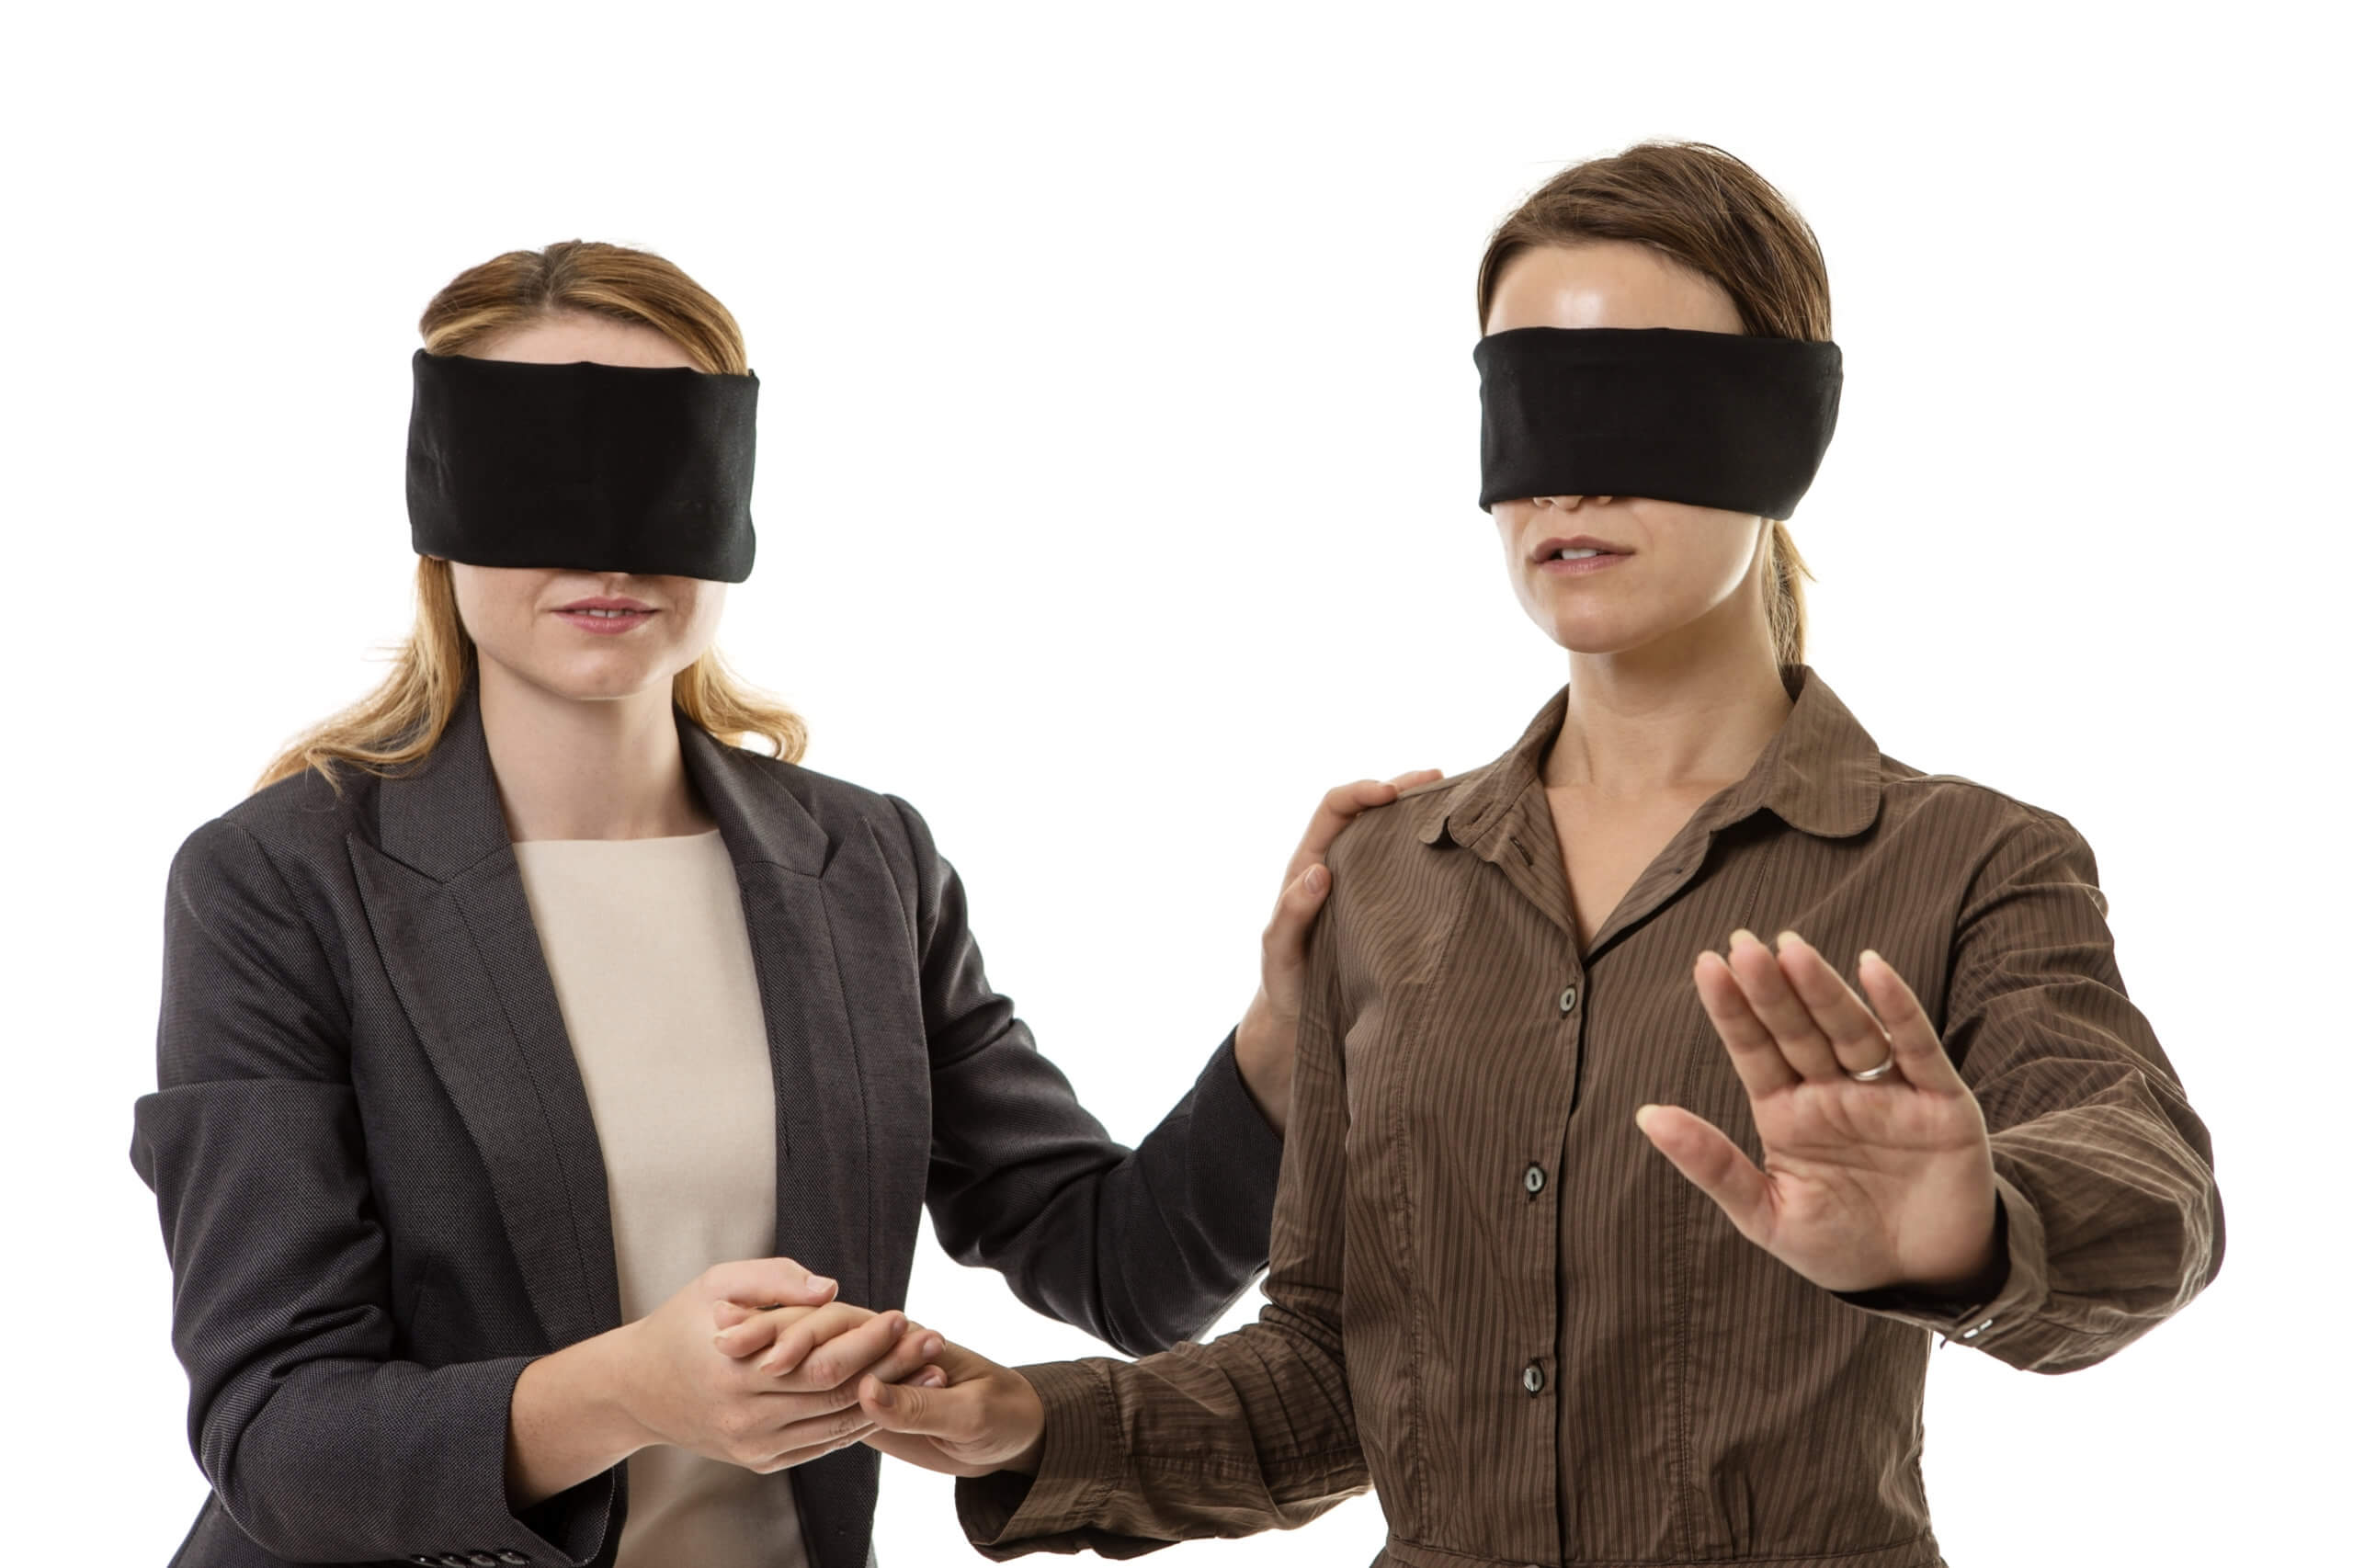 two business woman one blindfolded and the other helping